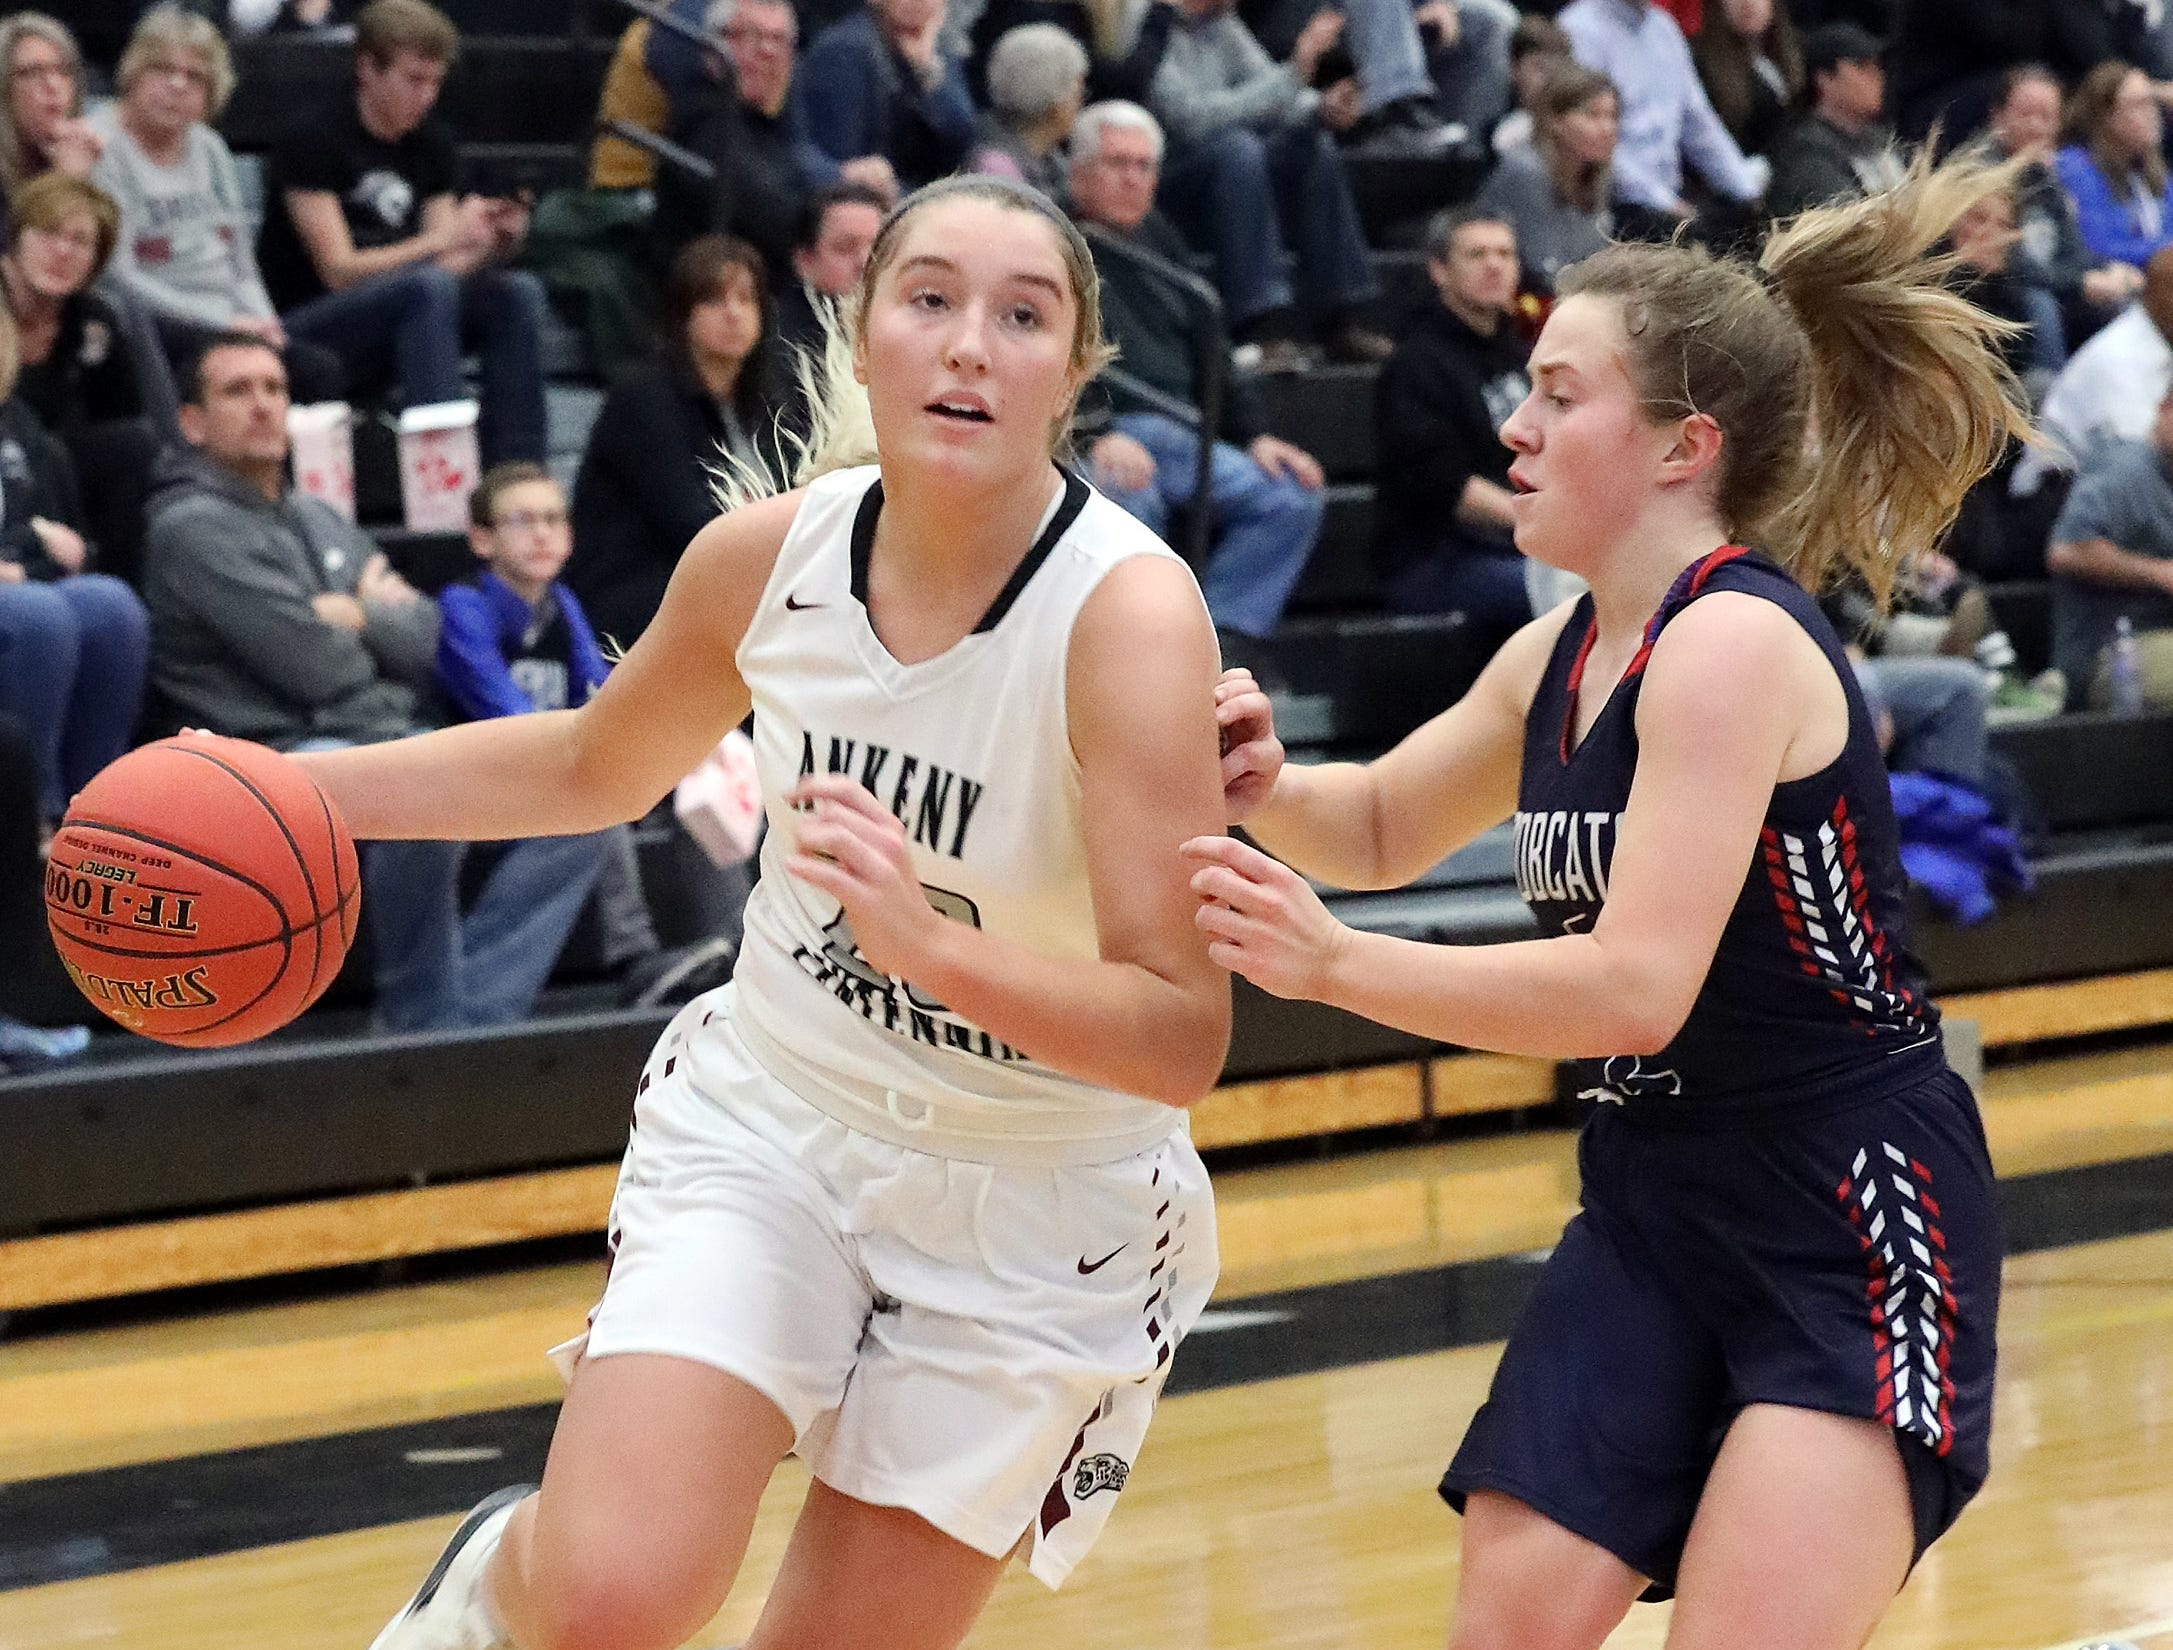 Ankeny Centennial senior Kenna Sauer drives past the defense as the Marshalltown Bobcats compete against the Ankeny Centennial Jaguars in high school girls basketball on Tuesday, Jan. 8, 2019 at Ankeny Centennial High School.